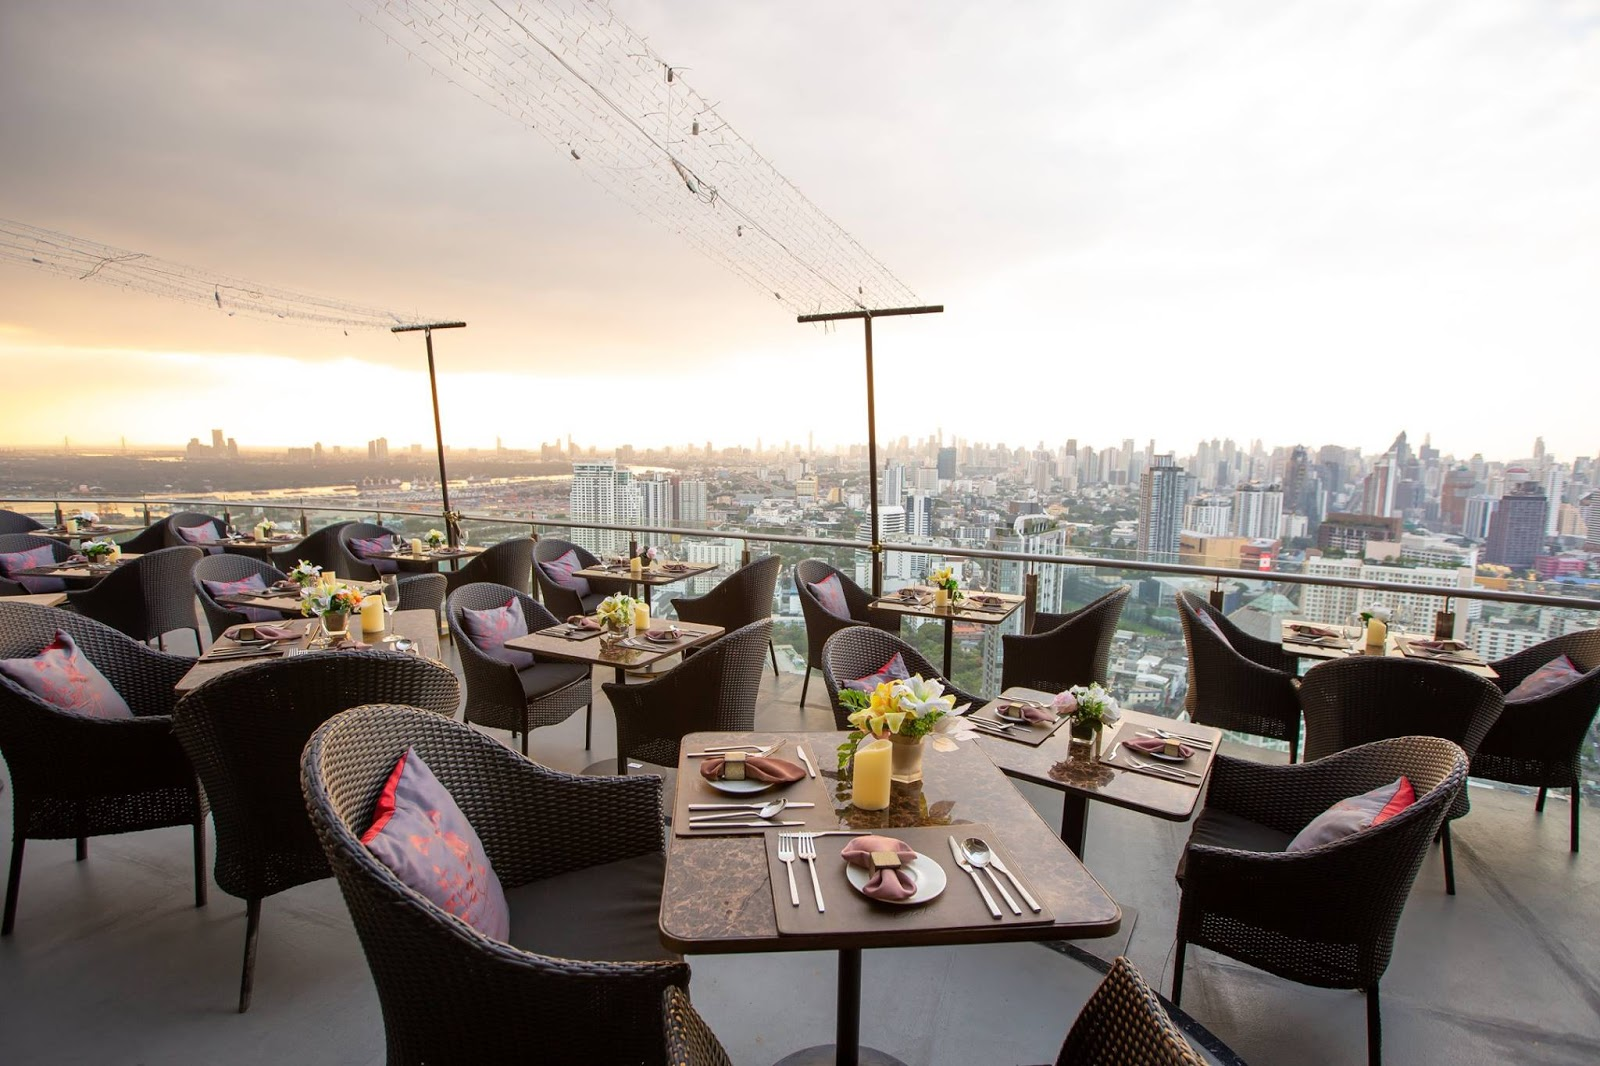 The Top Rooftop Bar in Sukhumvit: Cielo Sky Bar & Restaurant